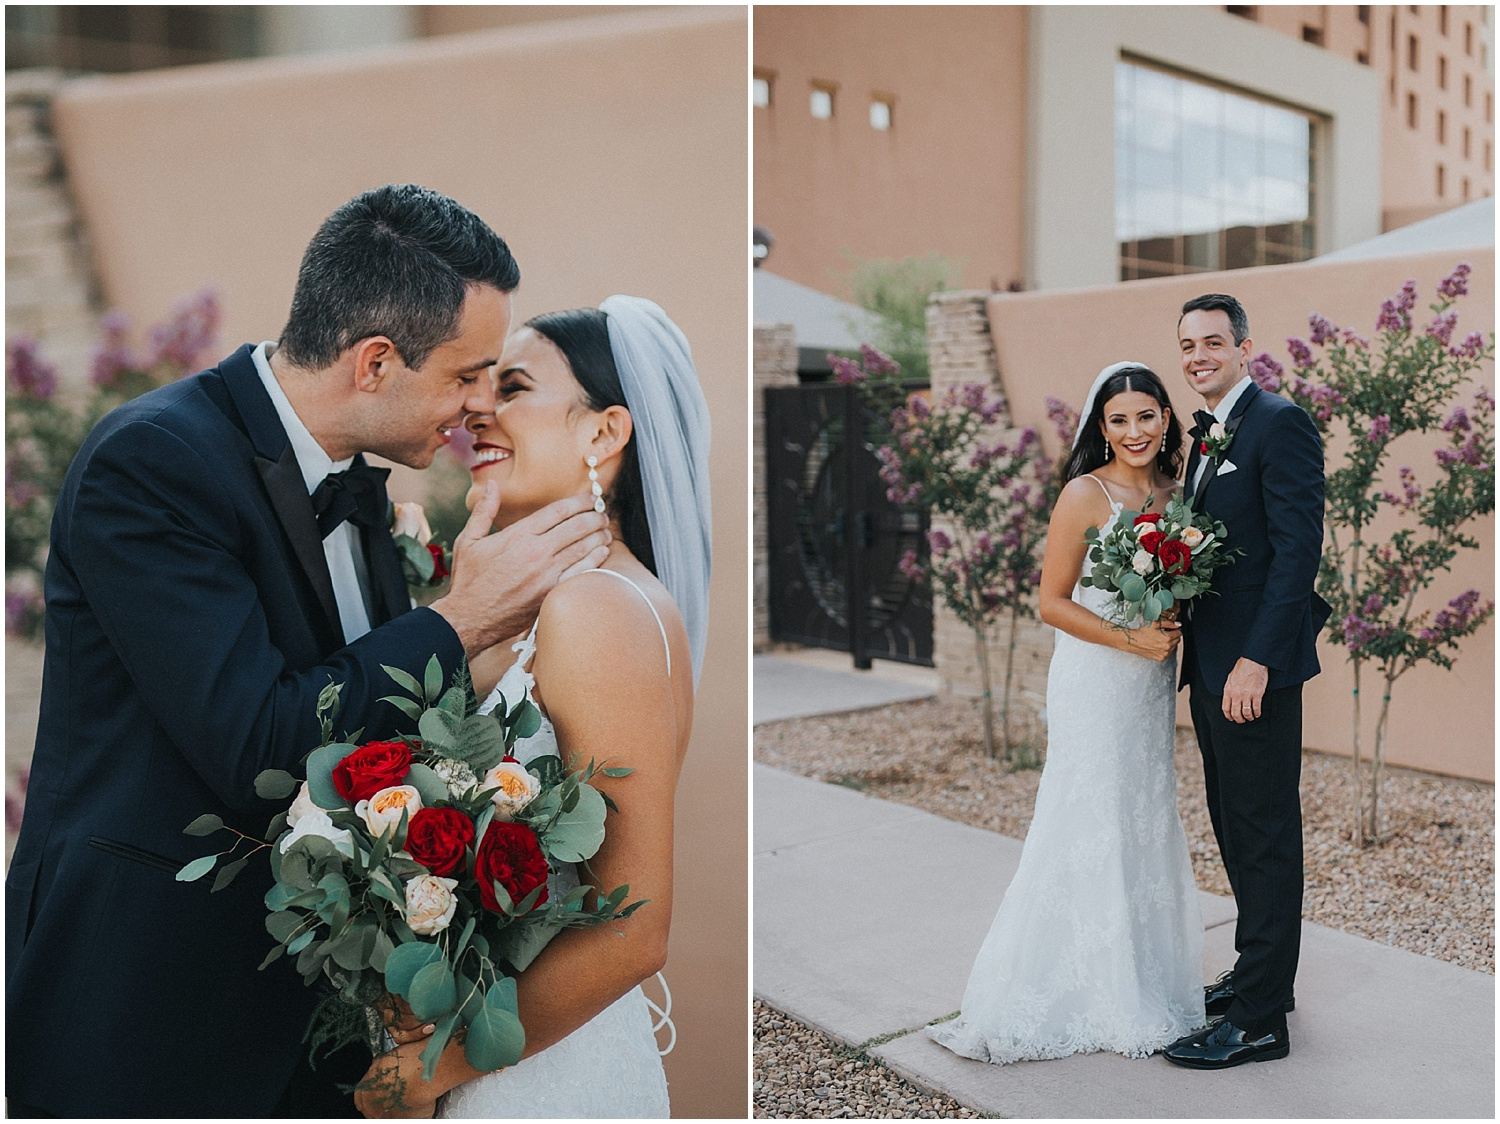 Jade + Steve exchanged their heartfelt vows at the San Felipe de Neri Church located on the north side of Old Town Plaza in Albuquerque, New Mexico. Both Jade + Steve said their ceremony was their favorite part of the day. Catholic ceremonies have such a special place in my heart + the architecture of San Felipe de Neri Church made for some spectacular family formals. We adventured around Old Town Plaza to take photos with their wedding party + then hopped on the party bus back to Sandia Resort & Casino to get the party started.